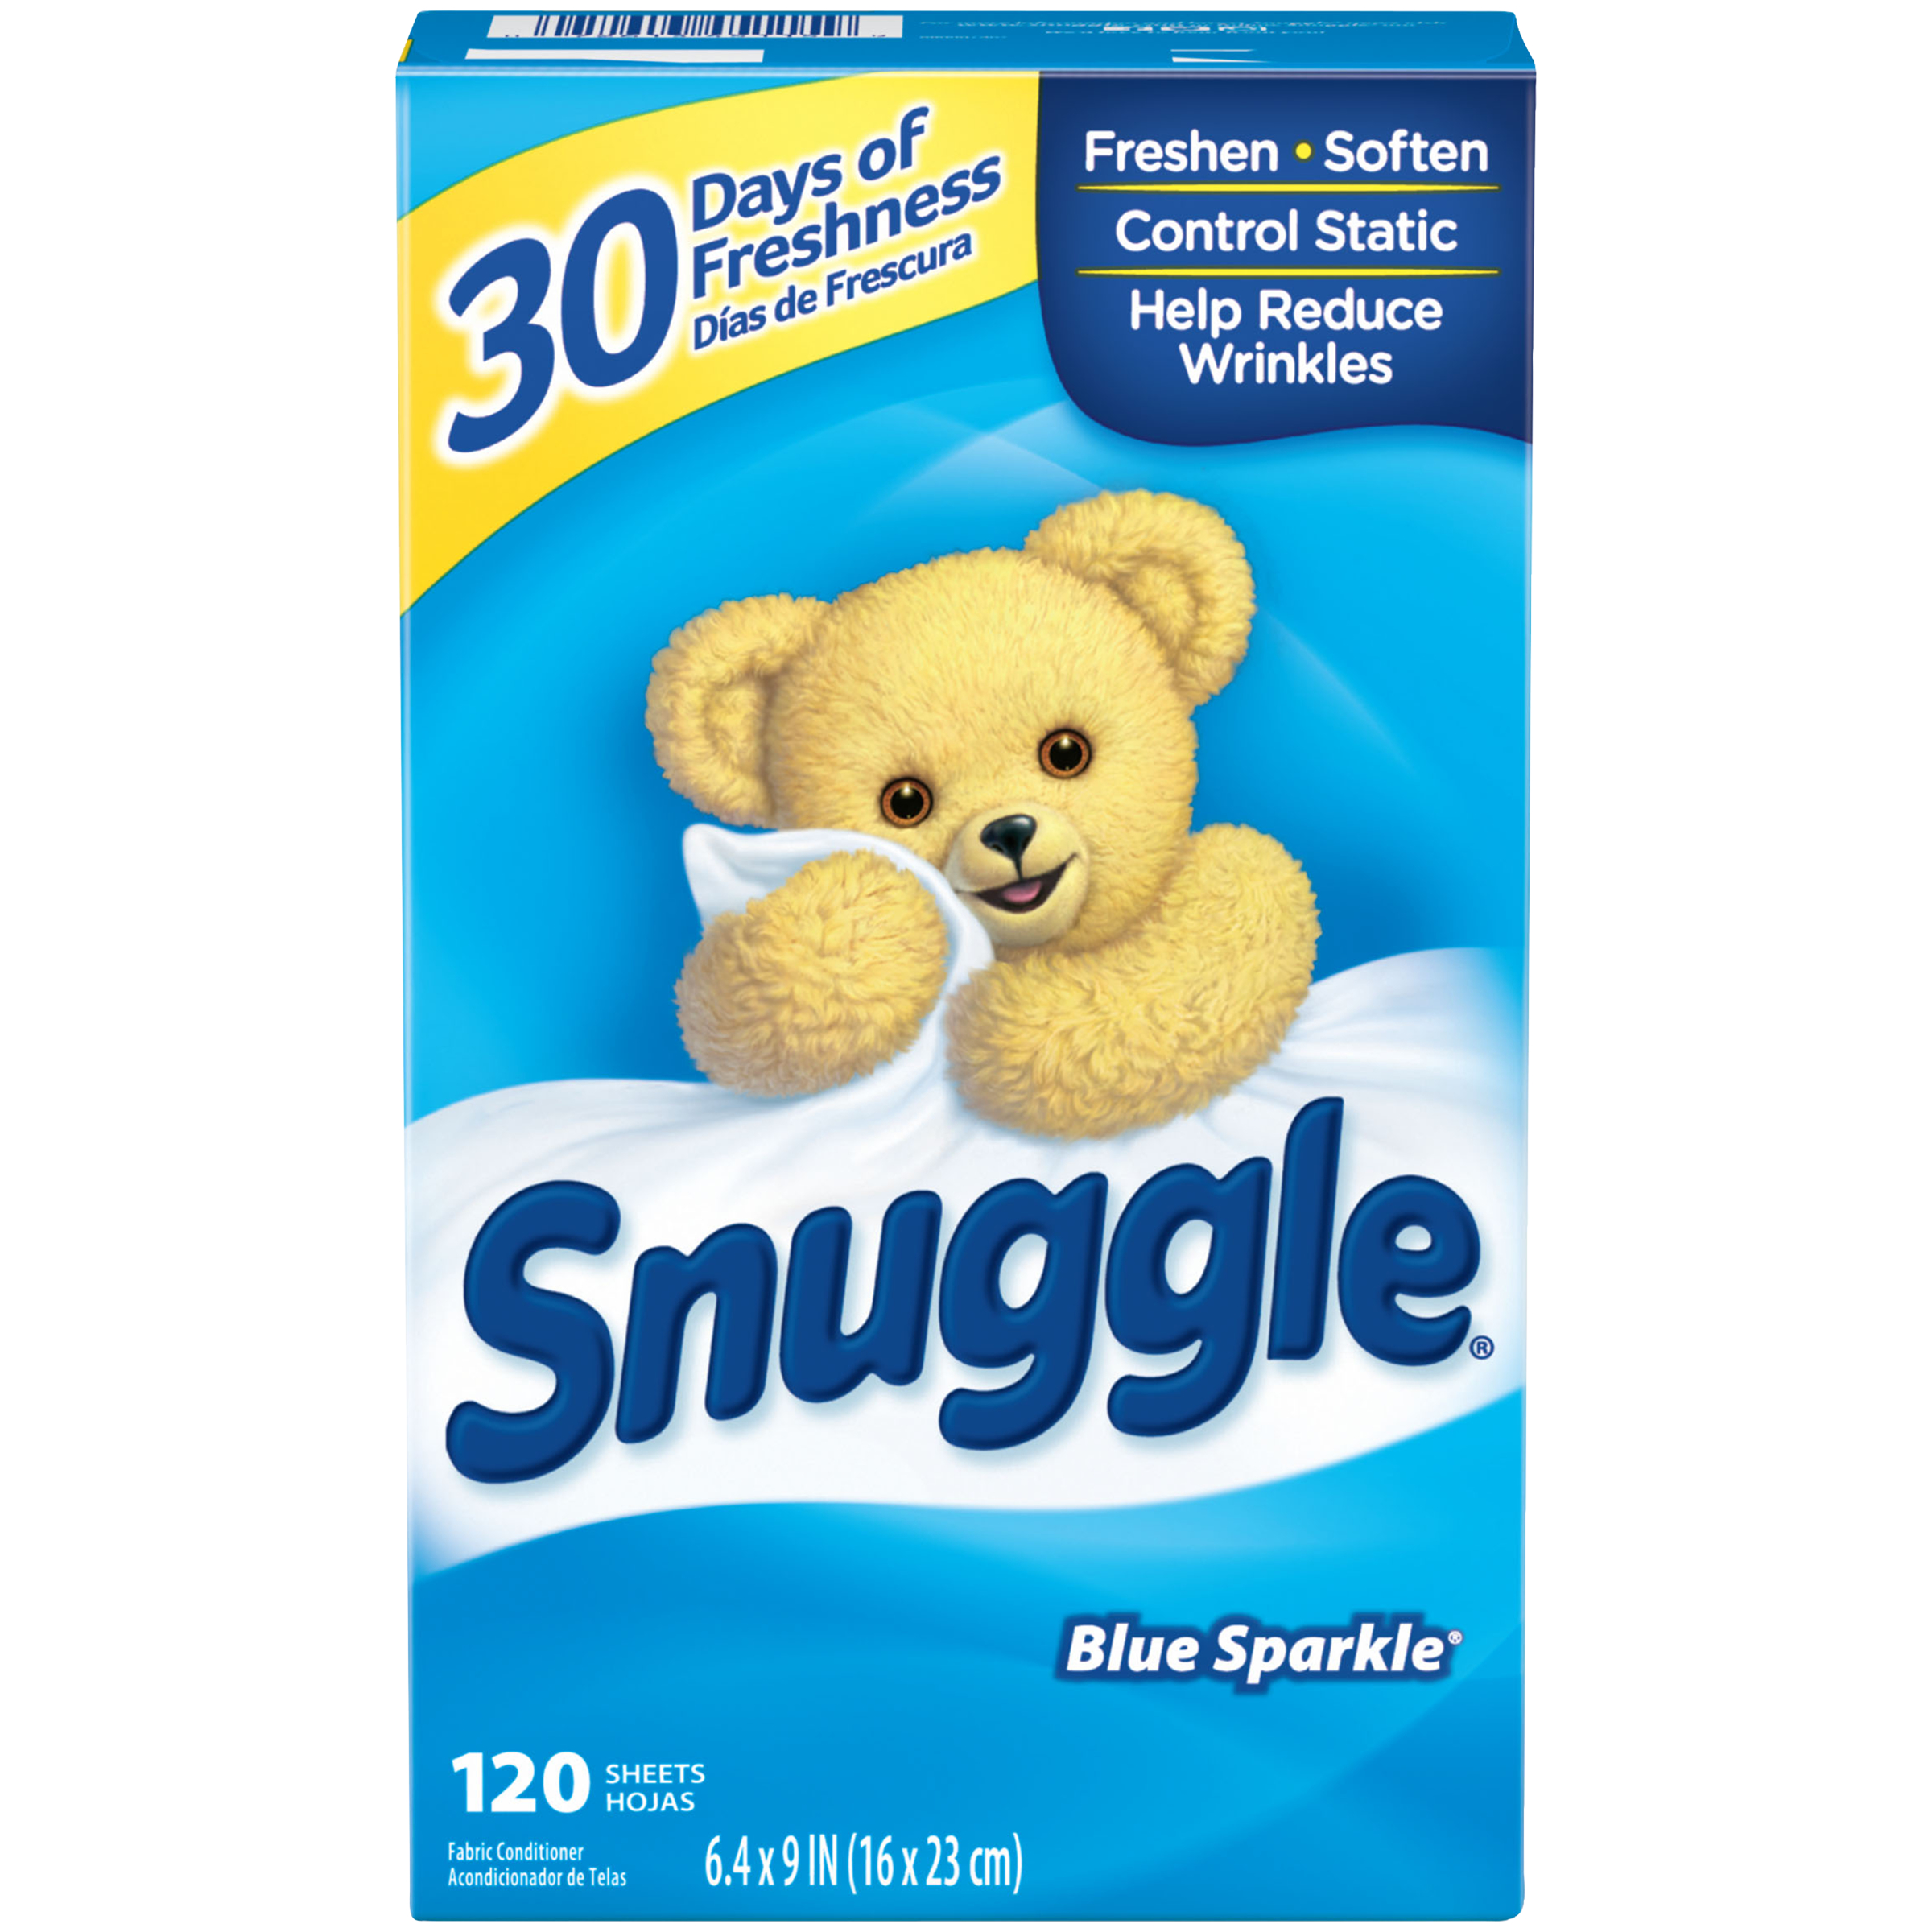 Snuggle Fabric Softener Sheets, Blue Sparkle, 120 Count